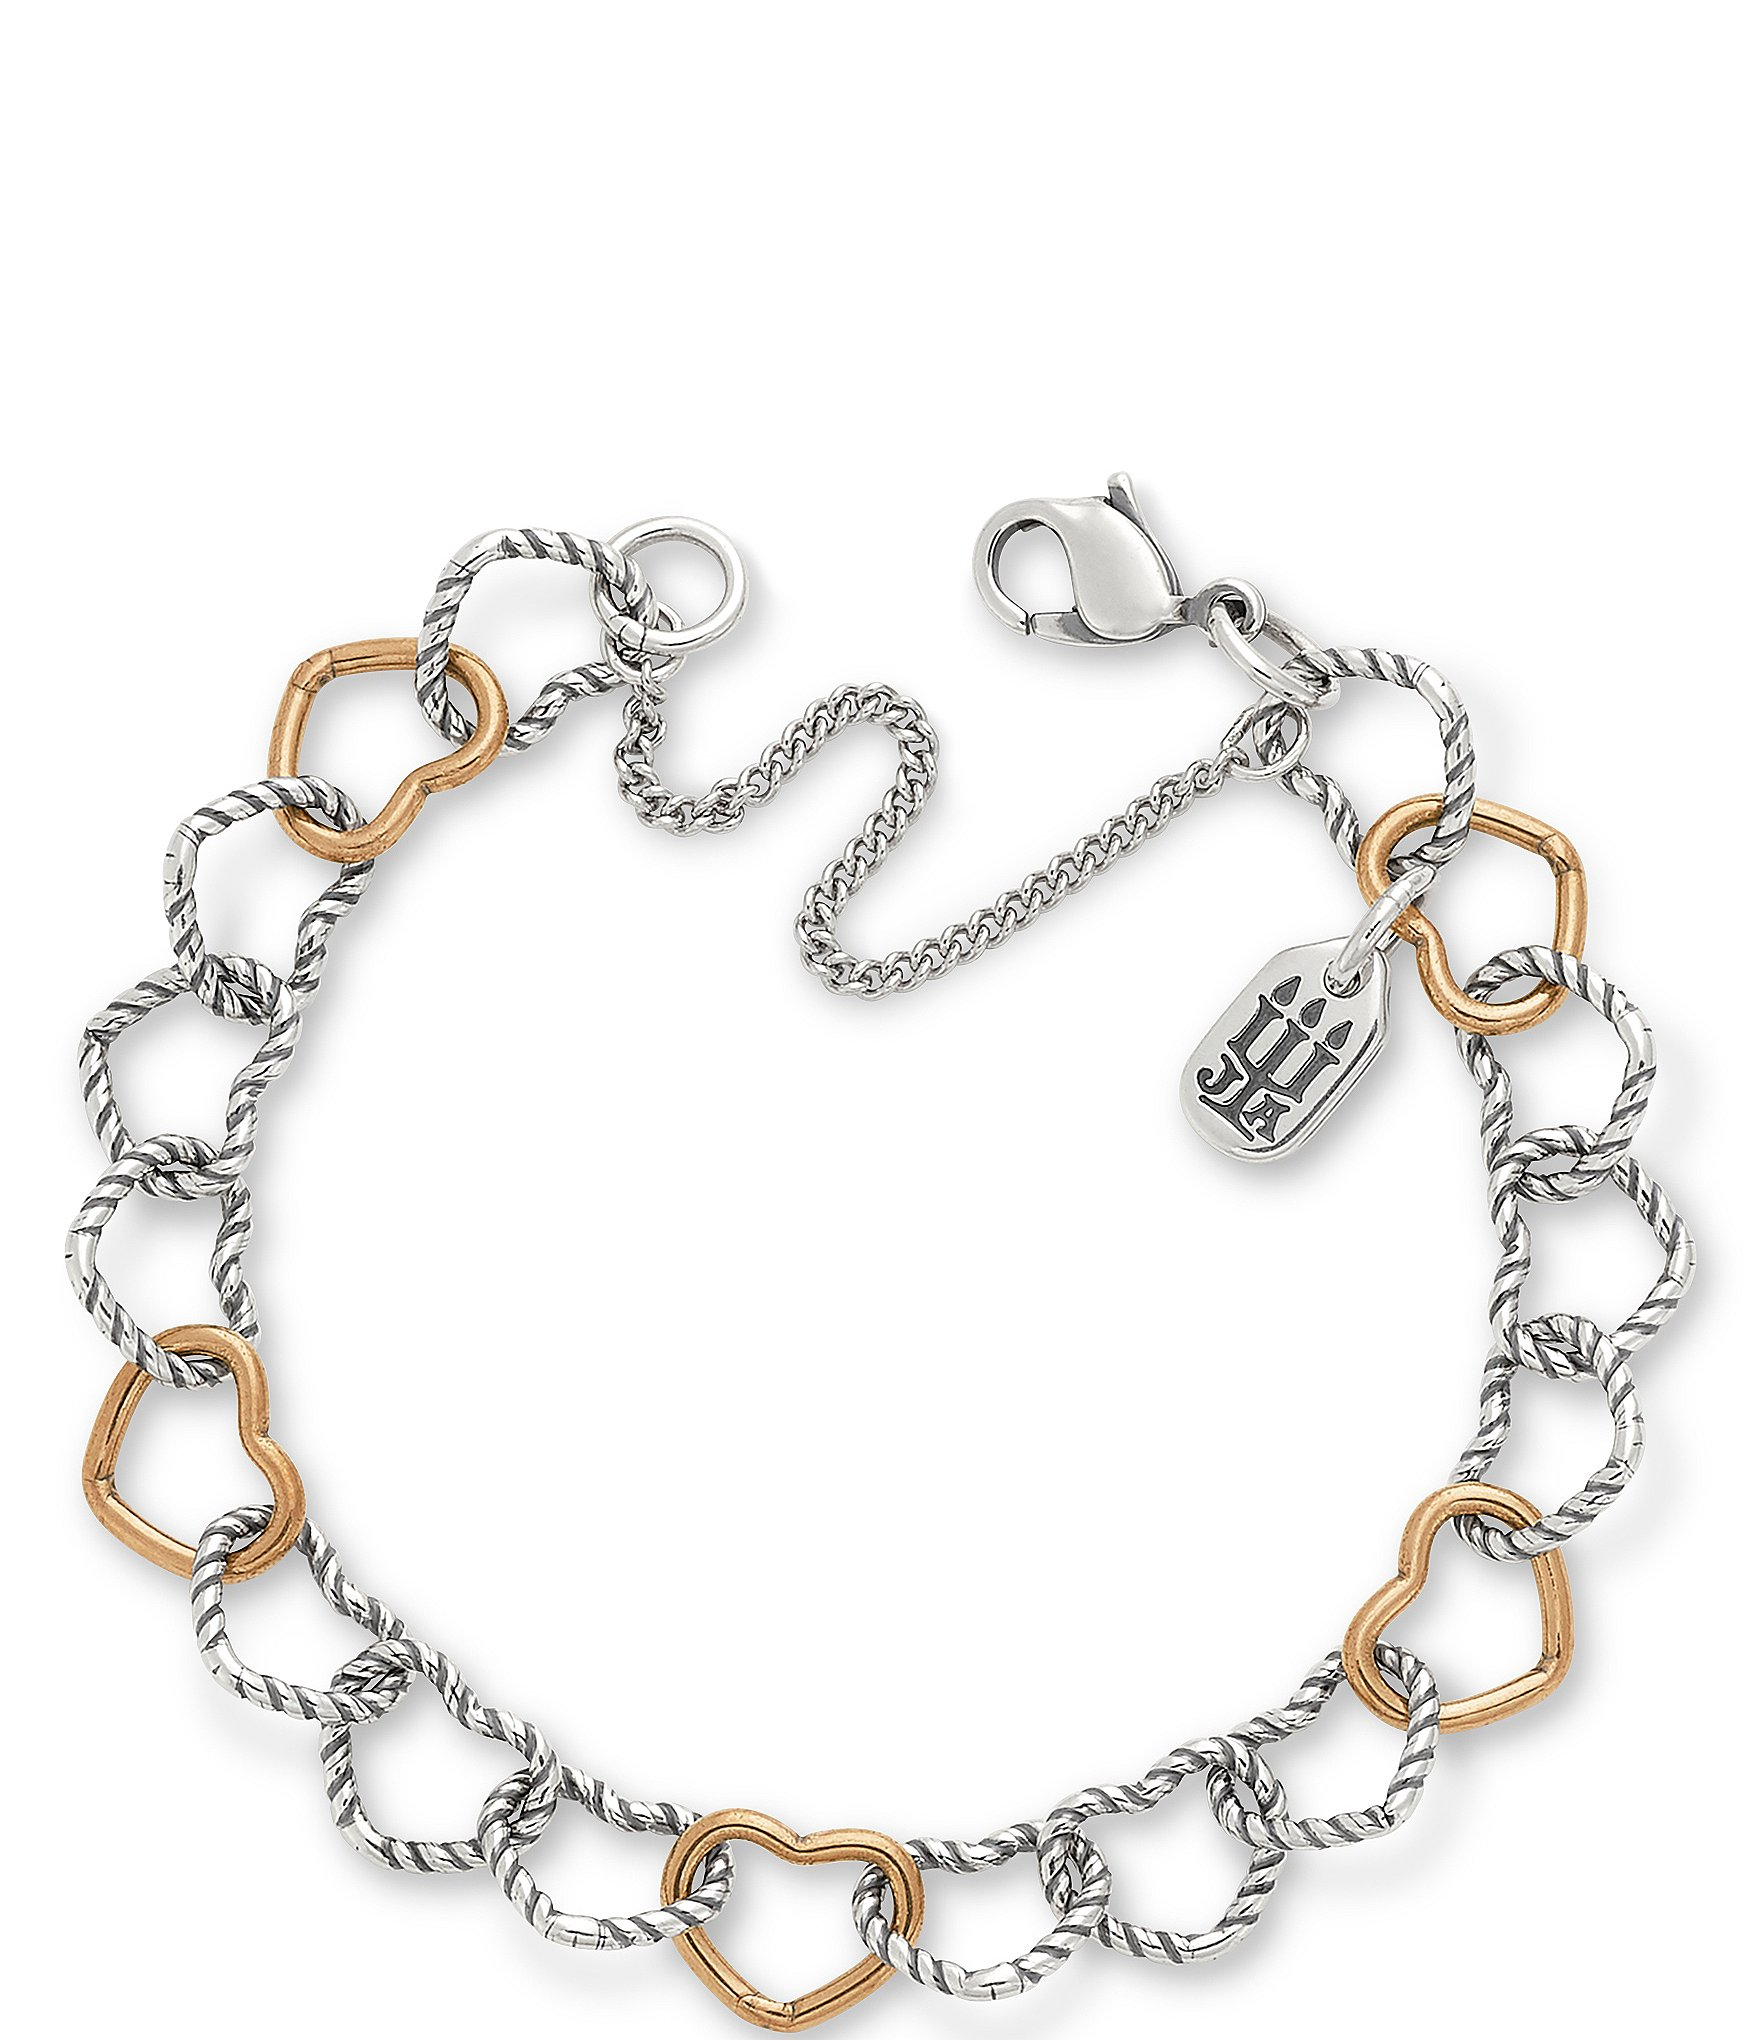 James Avery Twisted Wire Connected Hearts Charm Bracelet